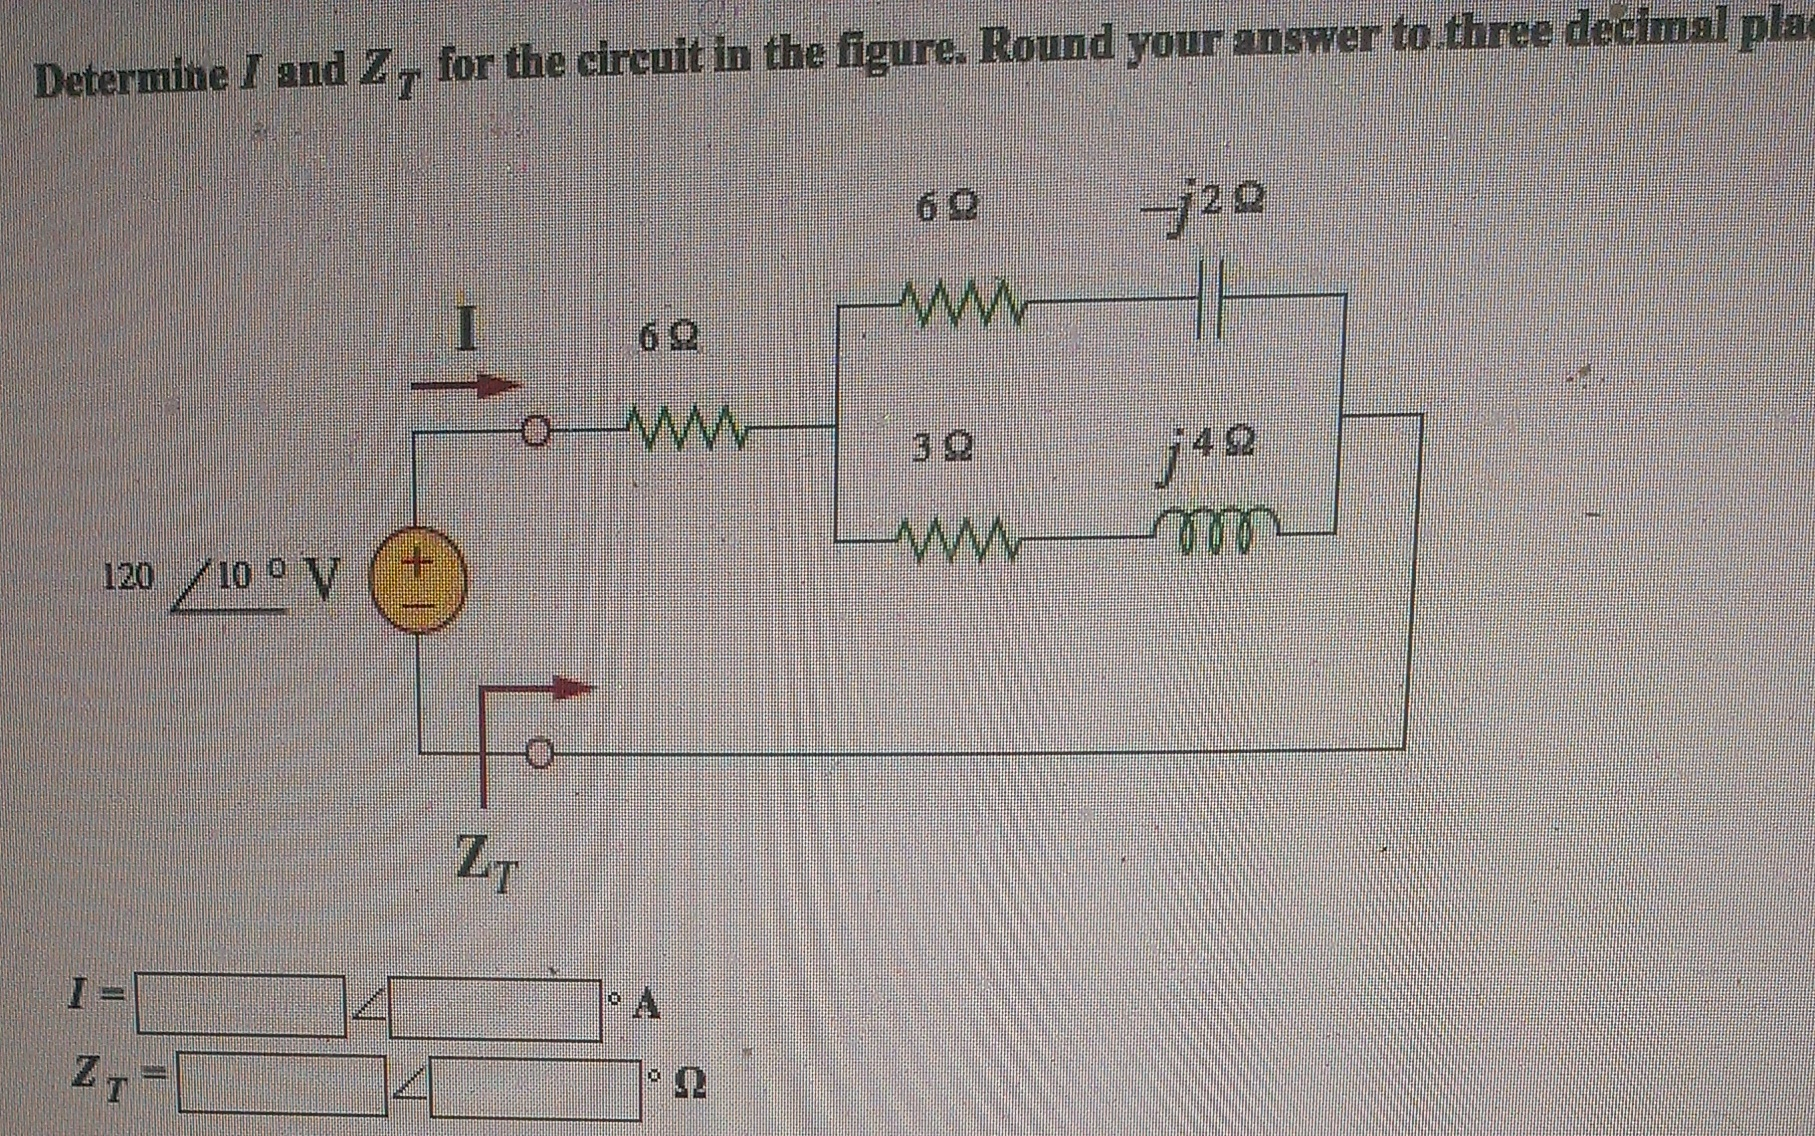 Find I0 in the circuit shown below, round final an